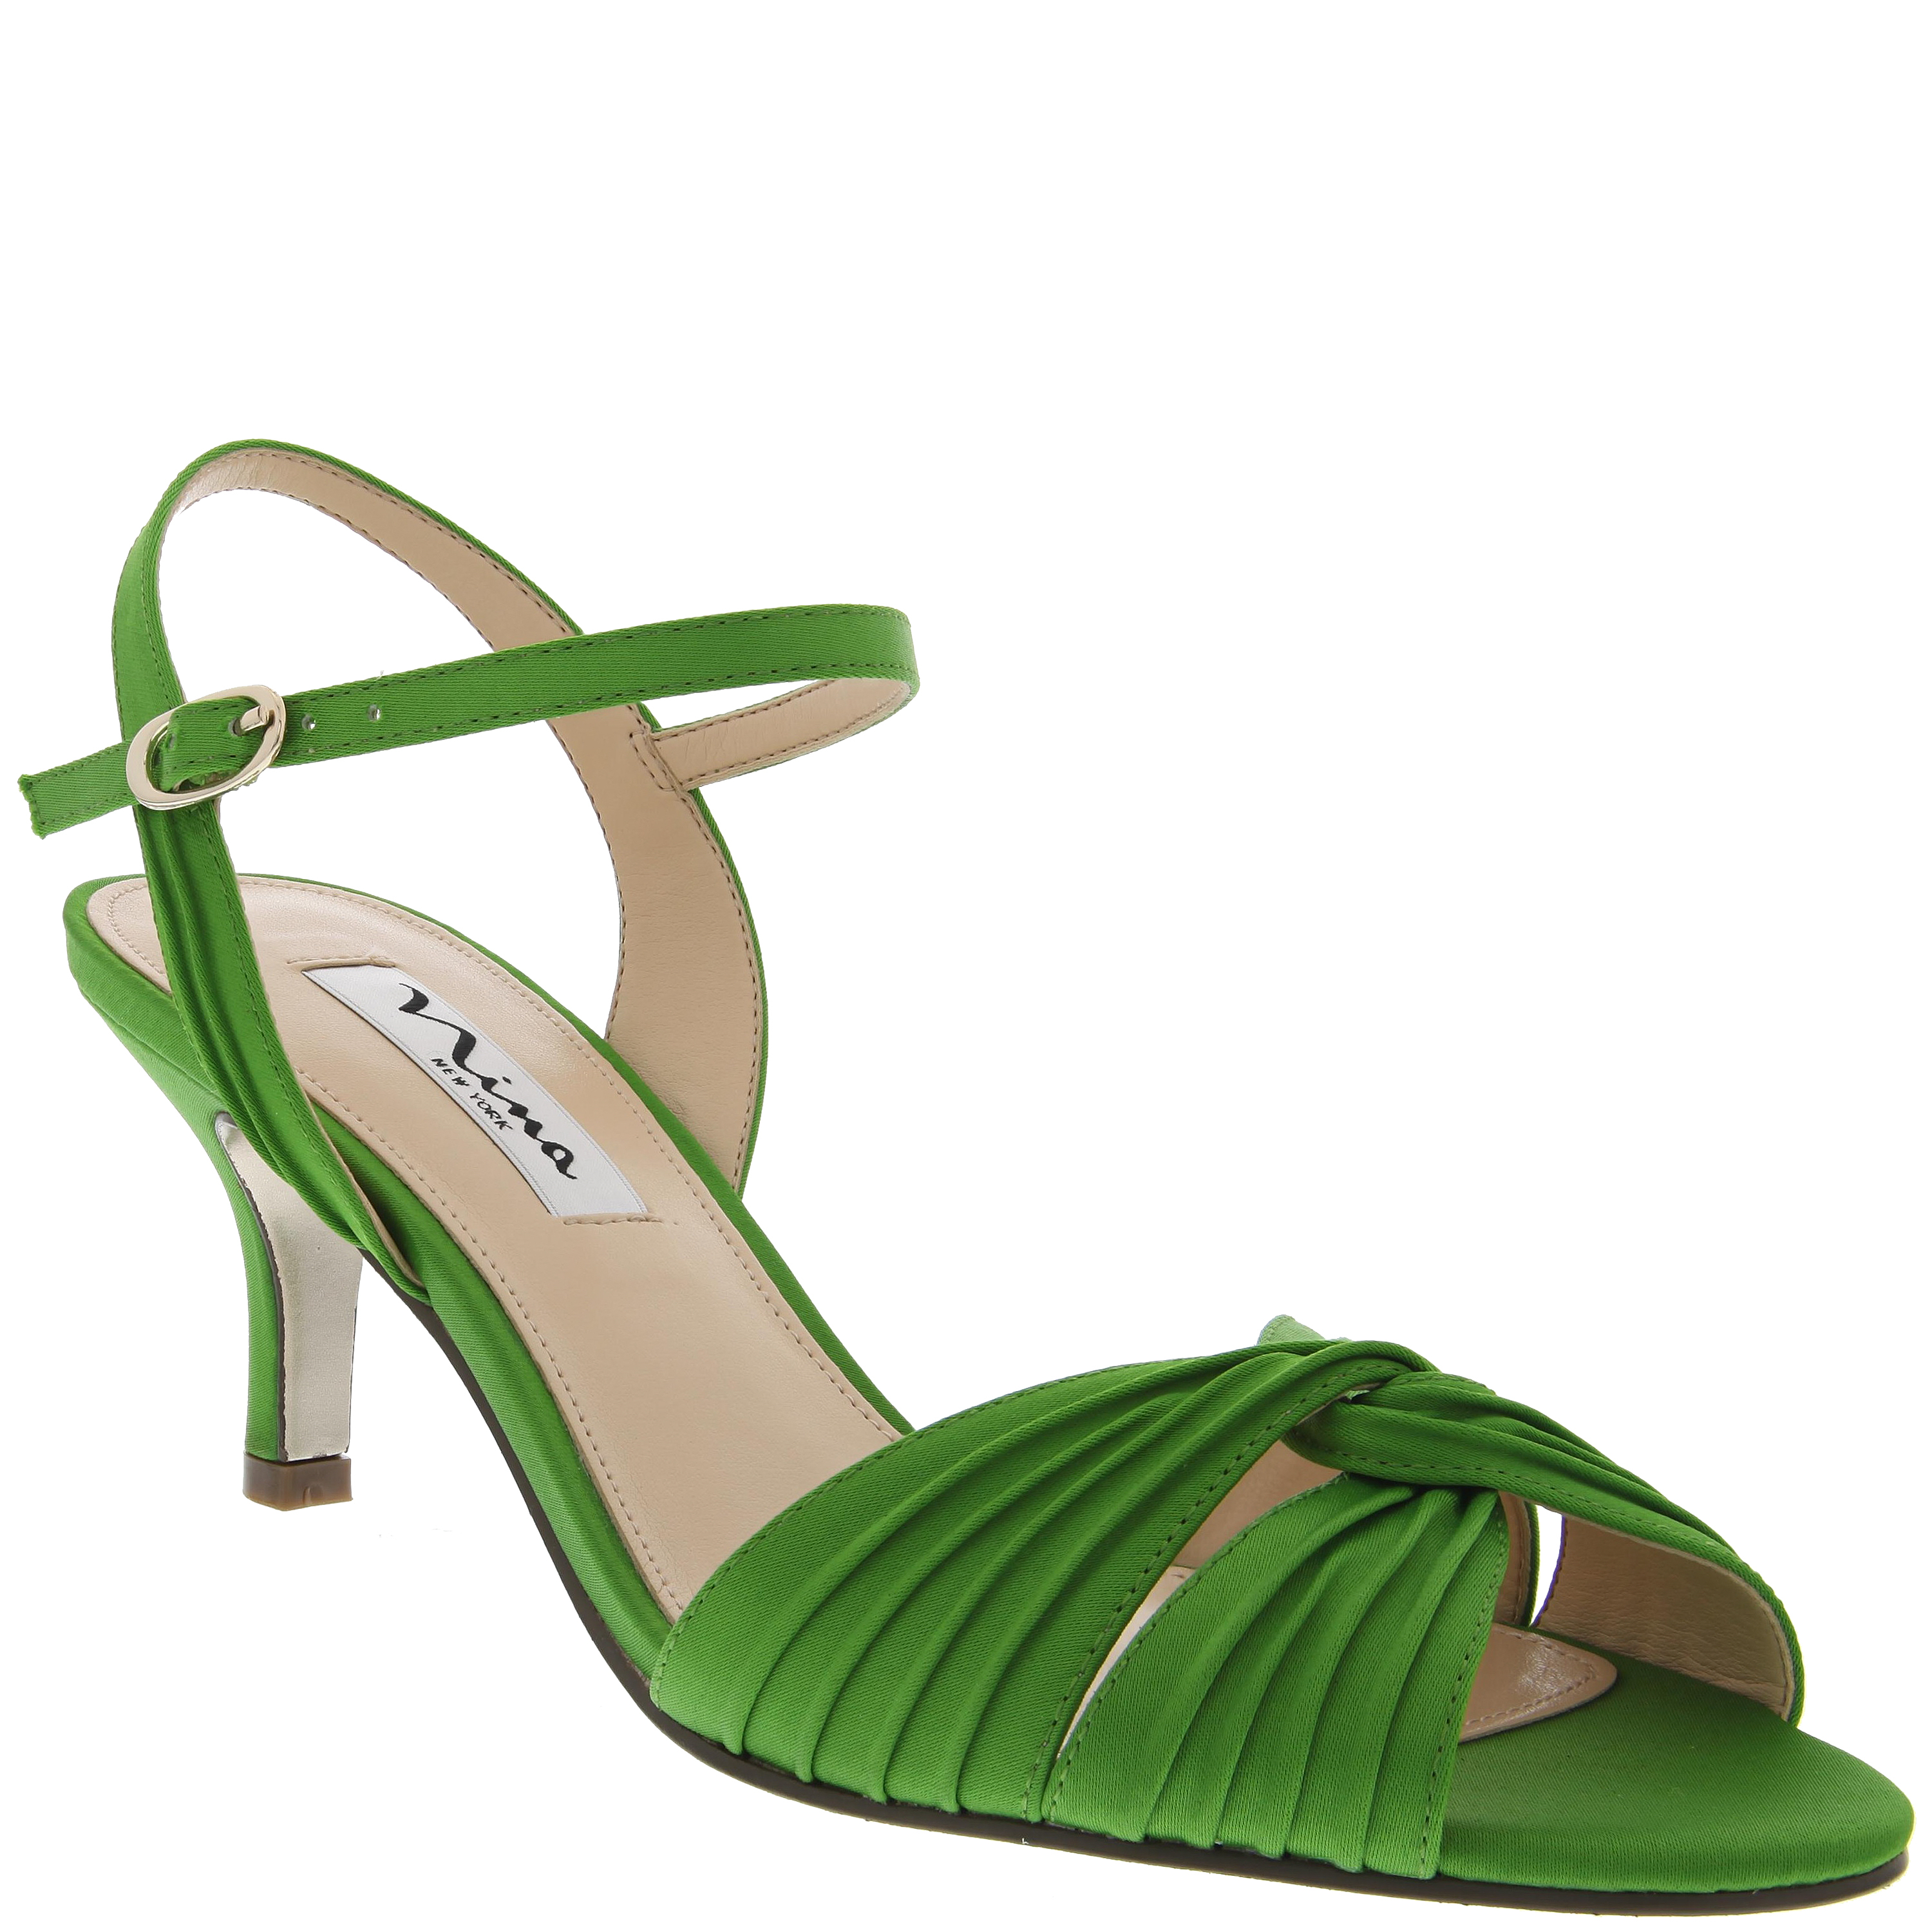 Stuccu: Best Deals on green nina shoes. Up To 70% offSpecial Discounts· Compare Prices· Exclusive Deals· Lowest PricesTypes: Electronics, Toys, Fashion, Home Improvement, Power tools, Sports equipment.